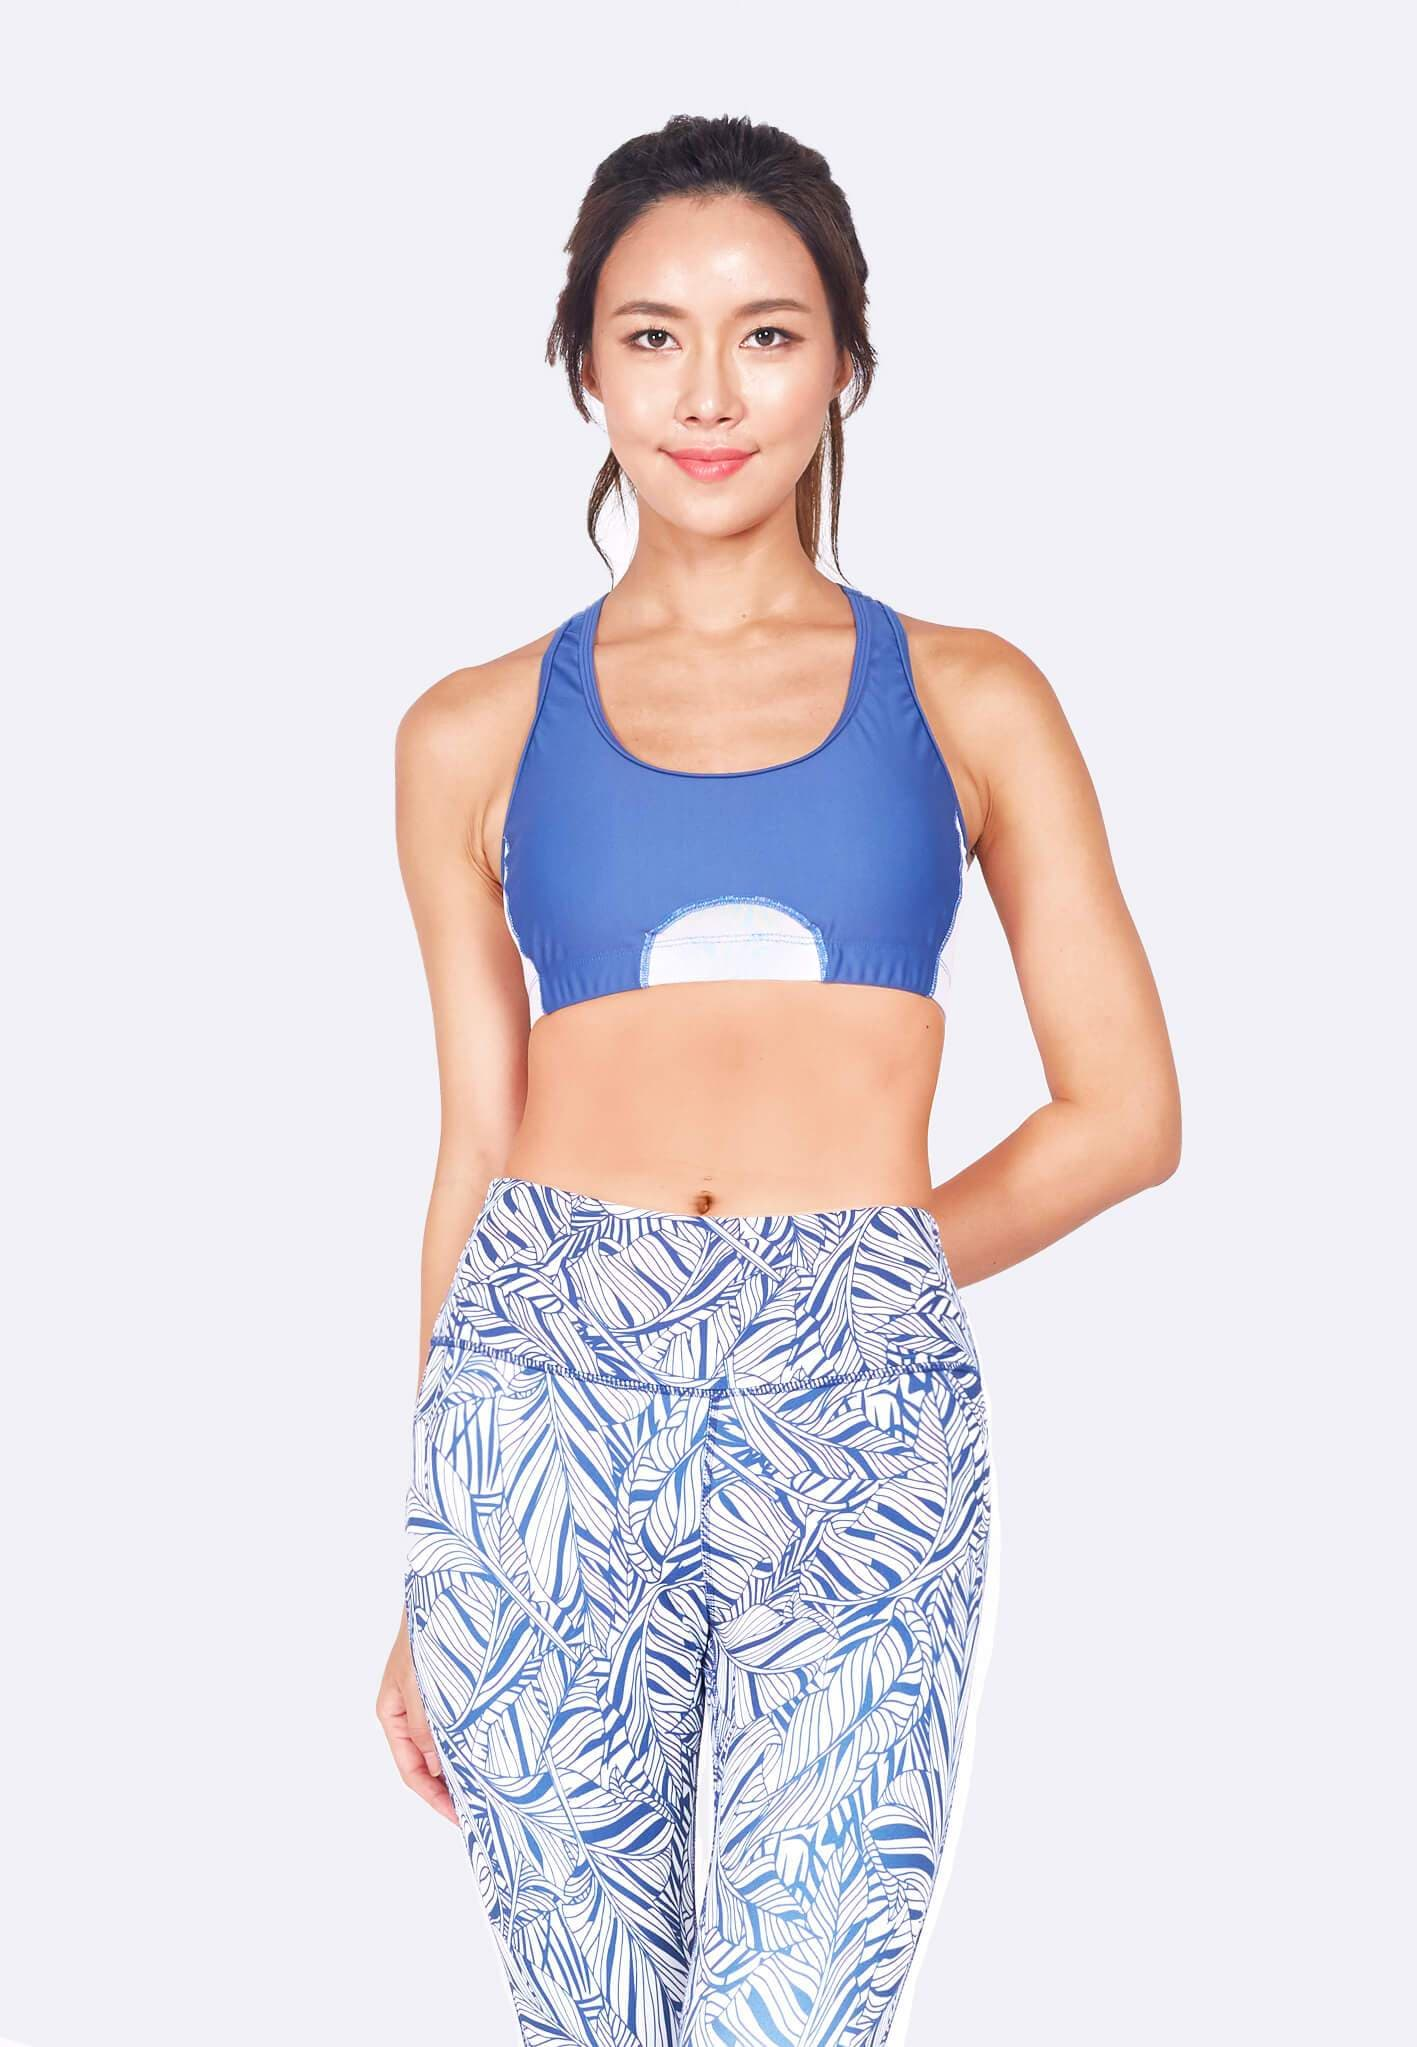 Knockout Racerback Sports Bra in White/Steel Blue (XS - 2XL)